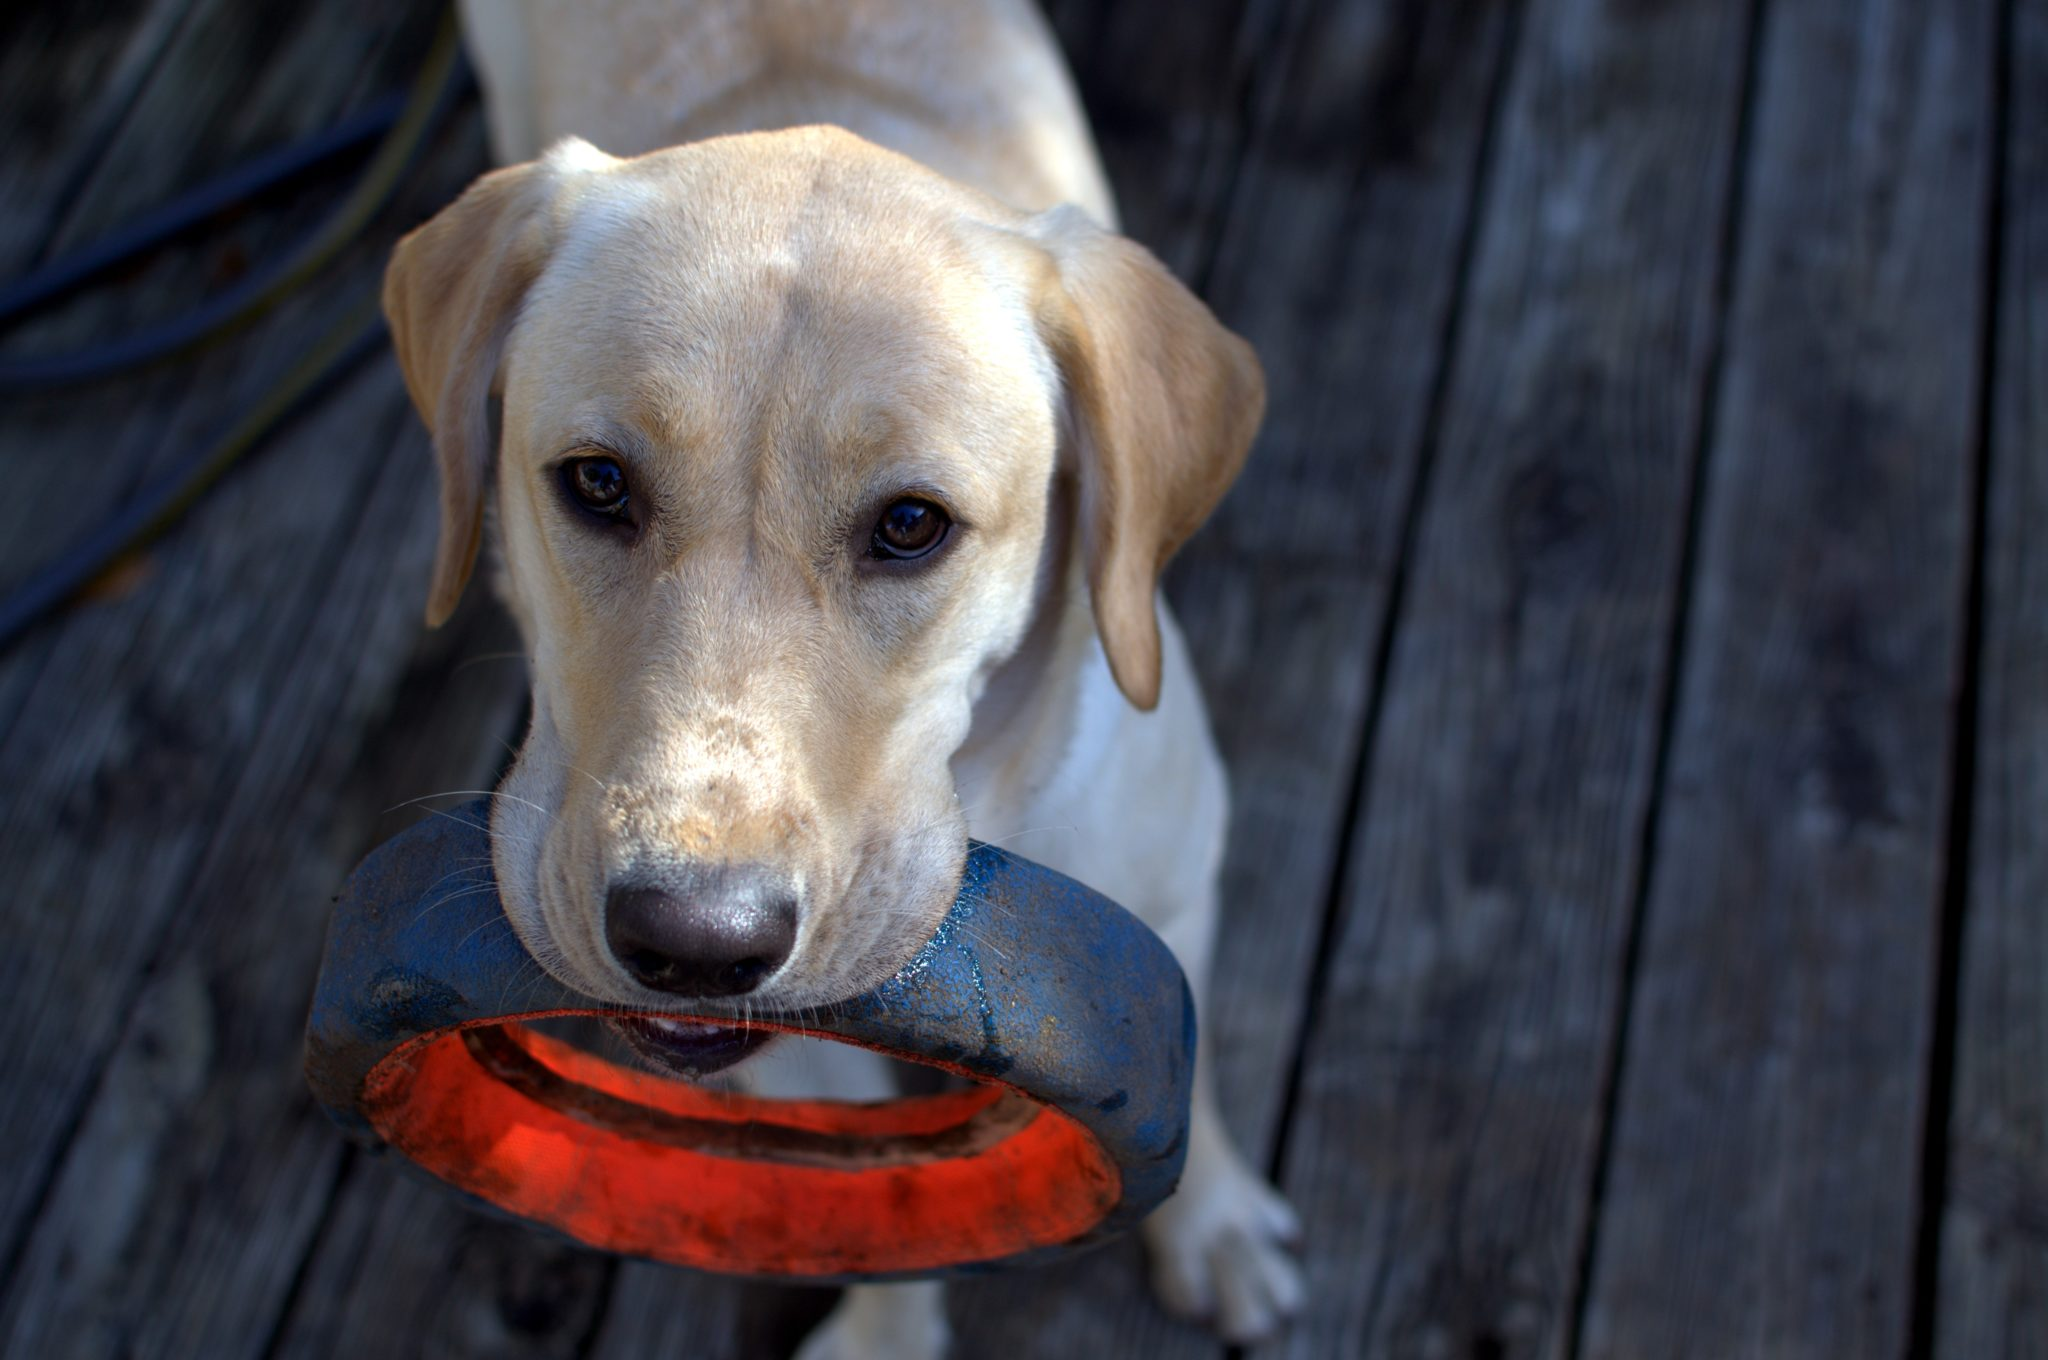 Training dogs to sniff out lung cancer nodules